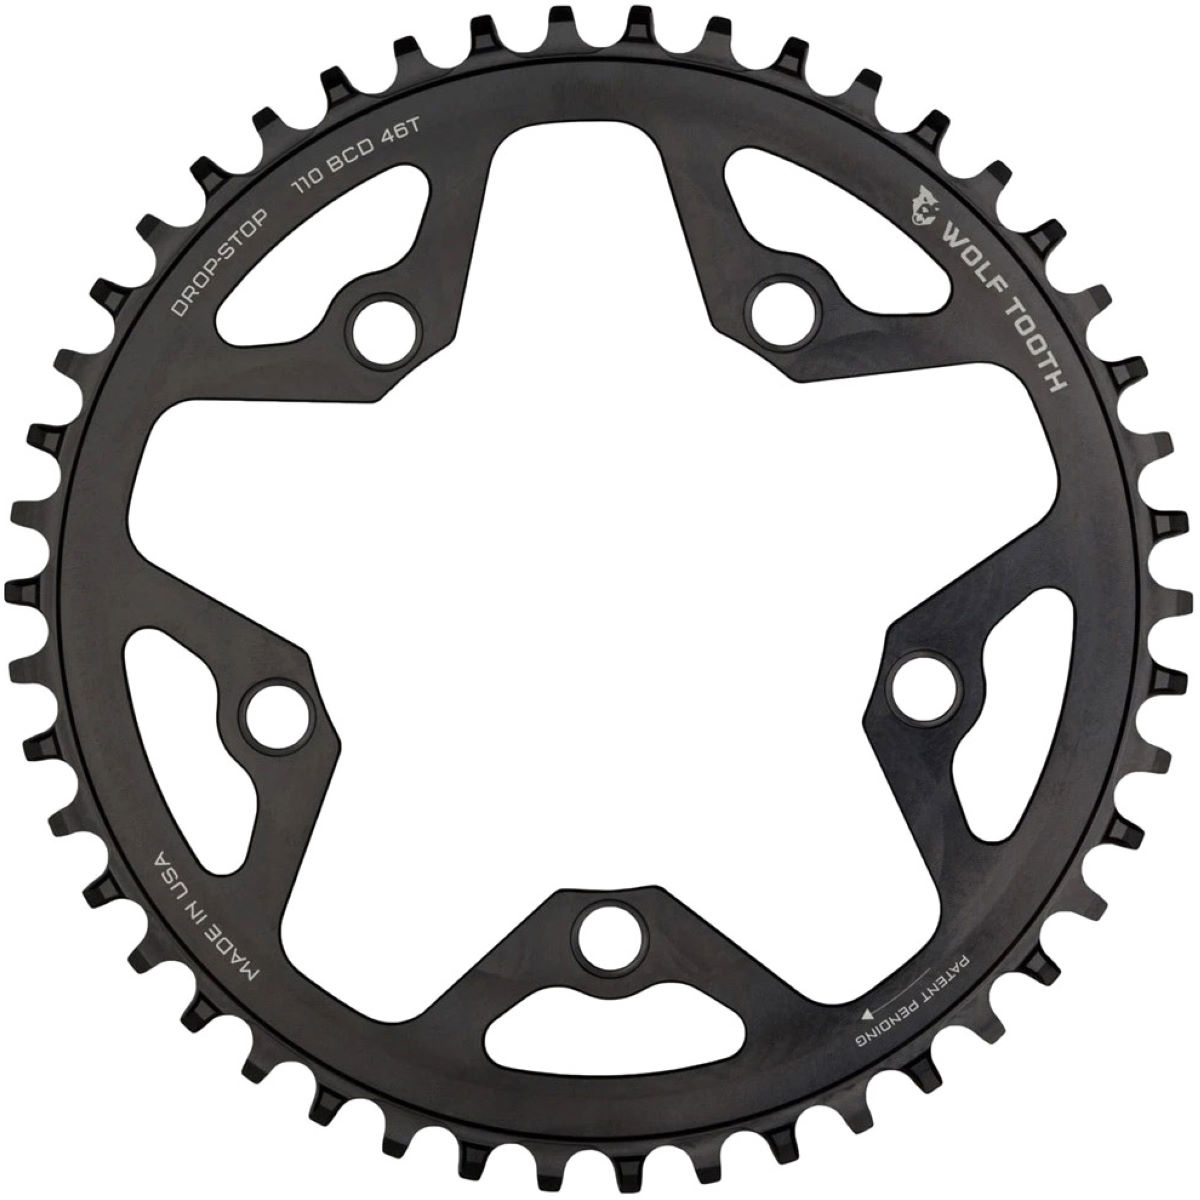 Wolf Tooth Flat Top Cyclocross 110 Bcd Chainring - 48t Black